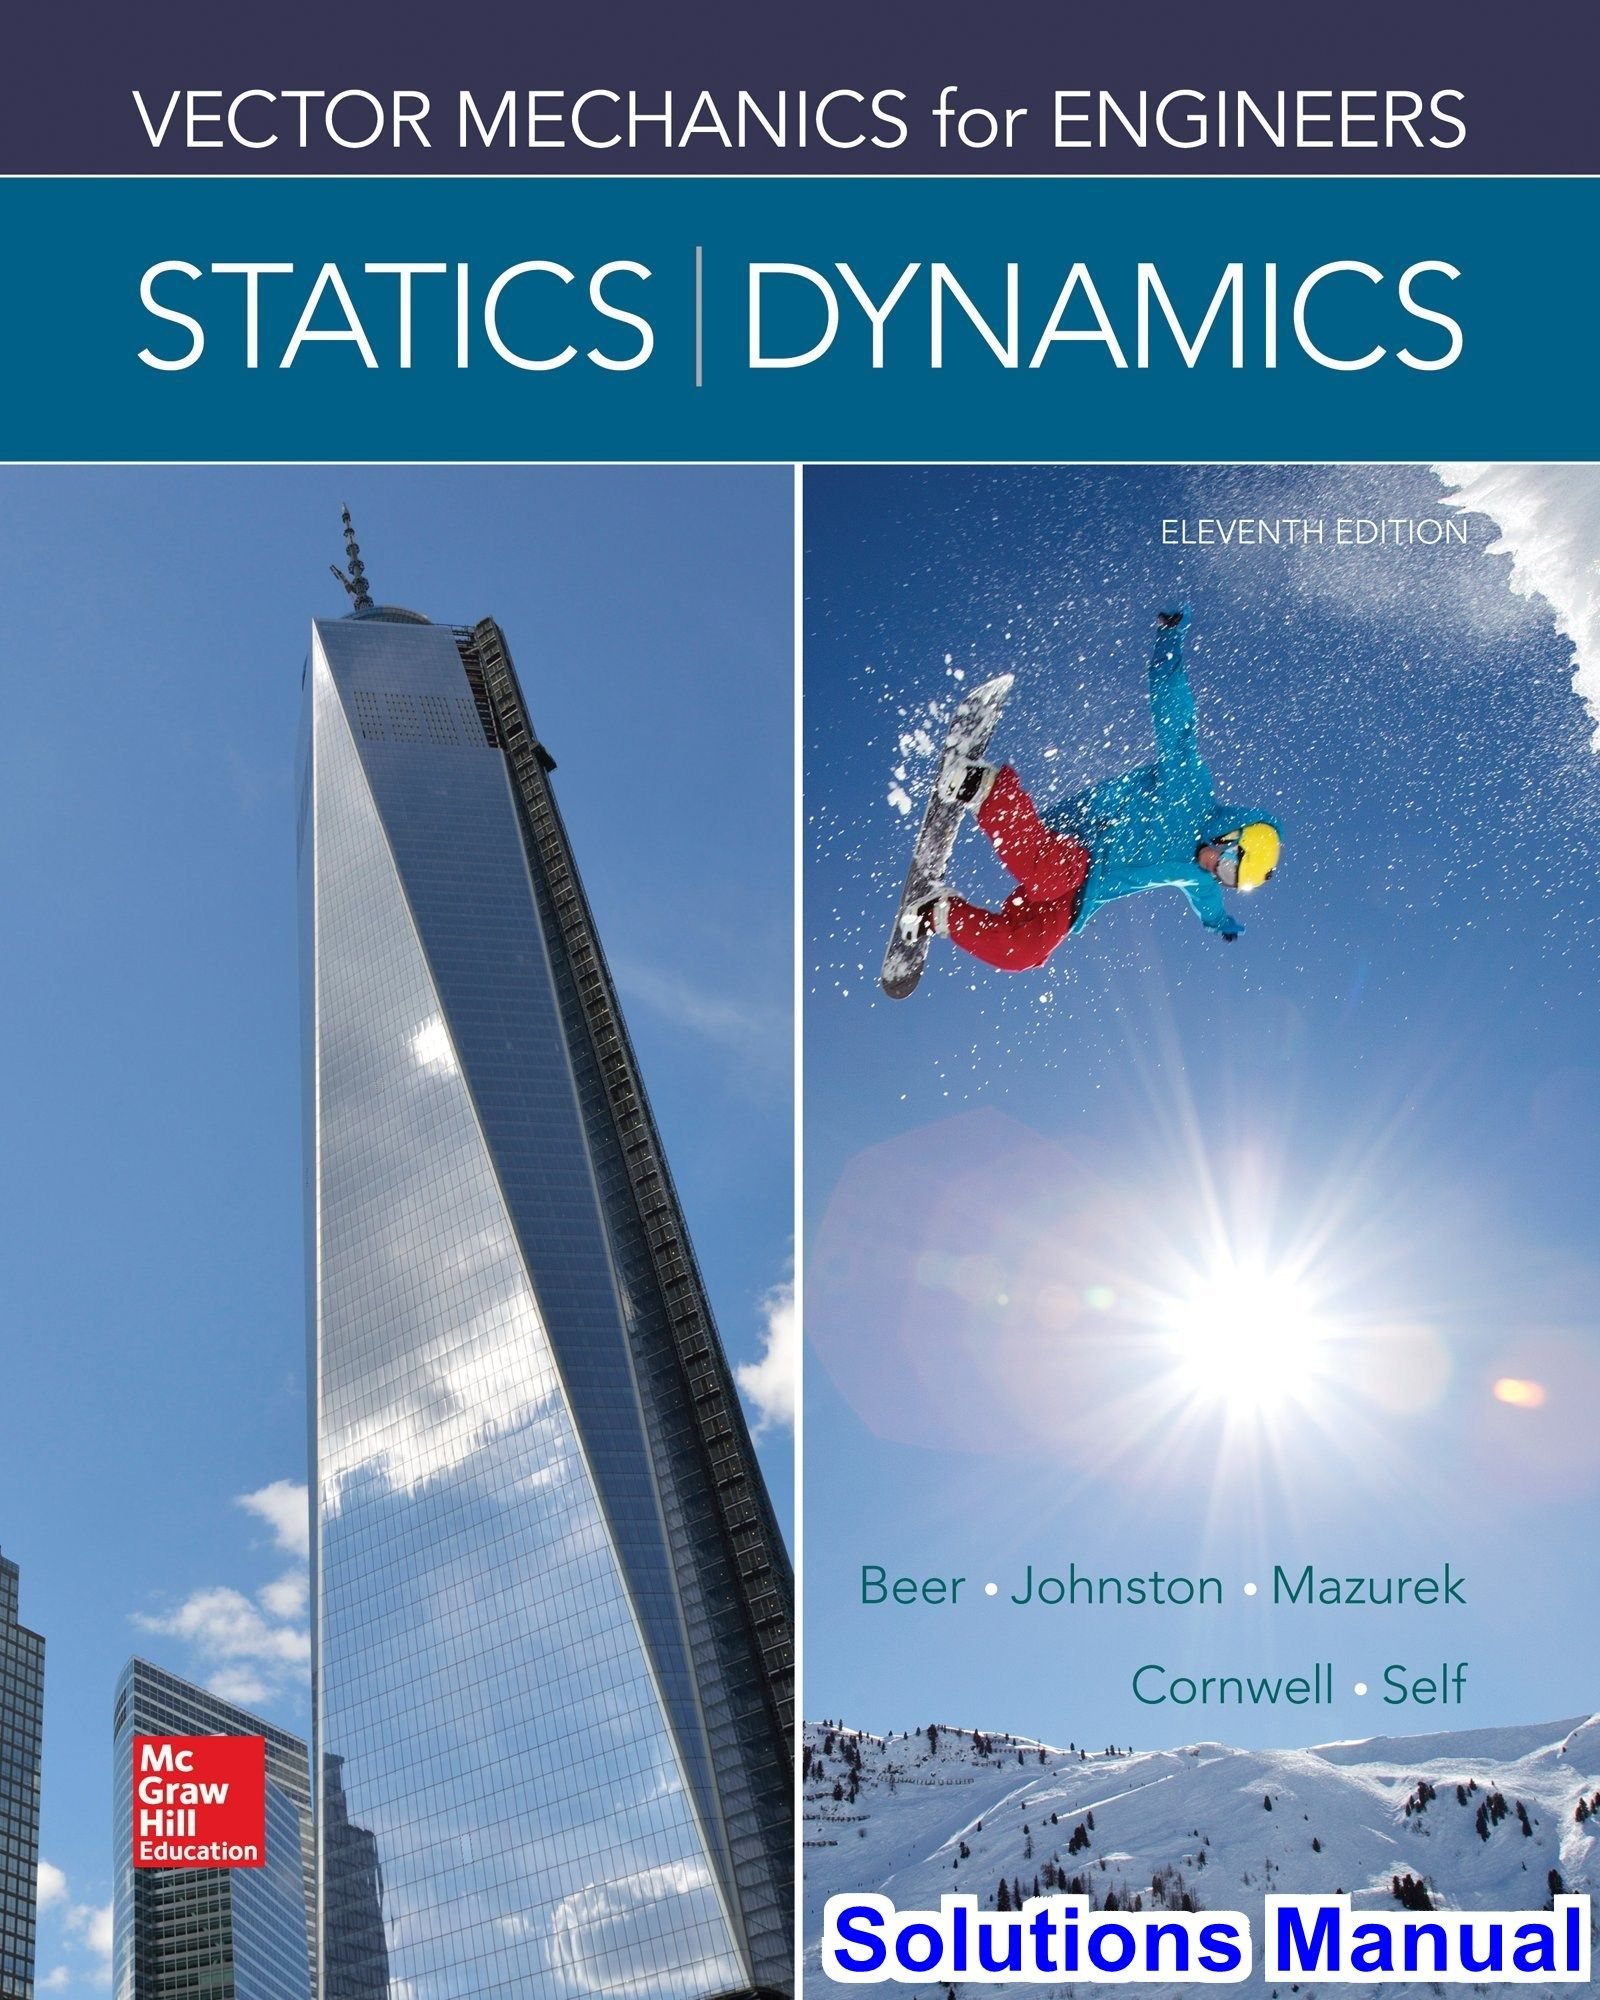 Solutions Manual For Vector Mechanics For Engineers Statics And